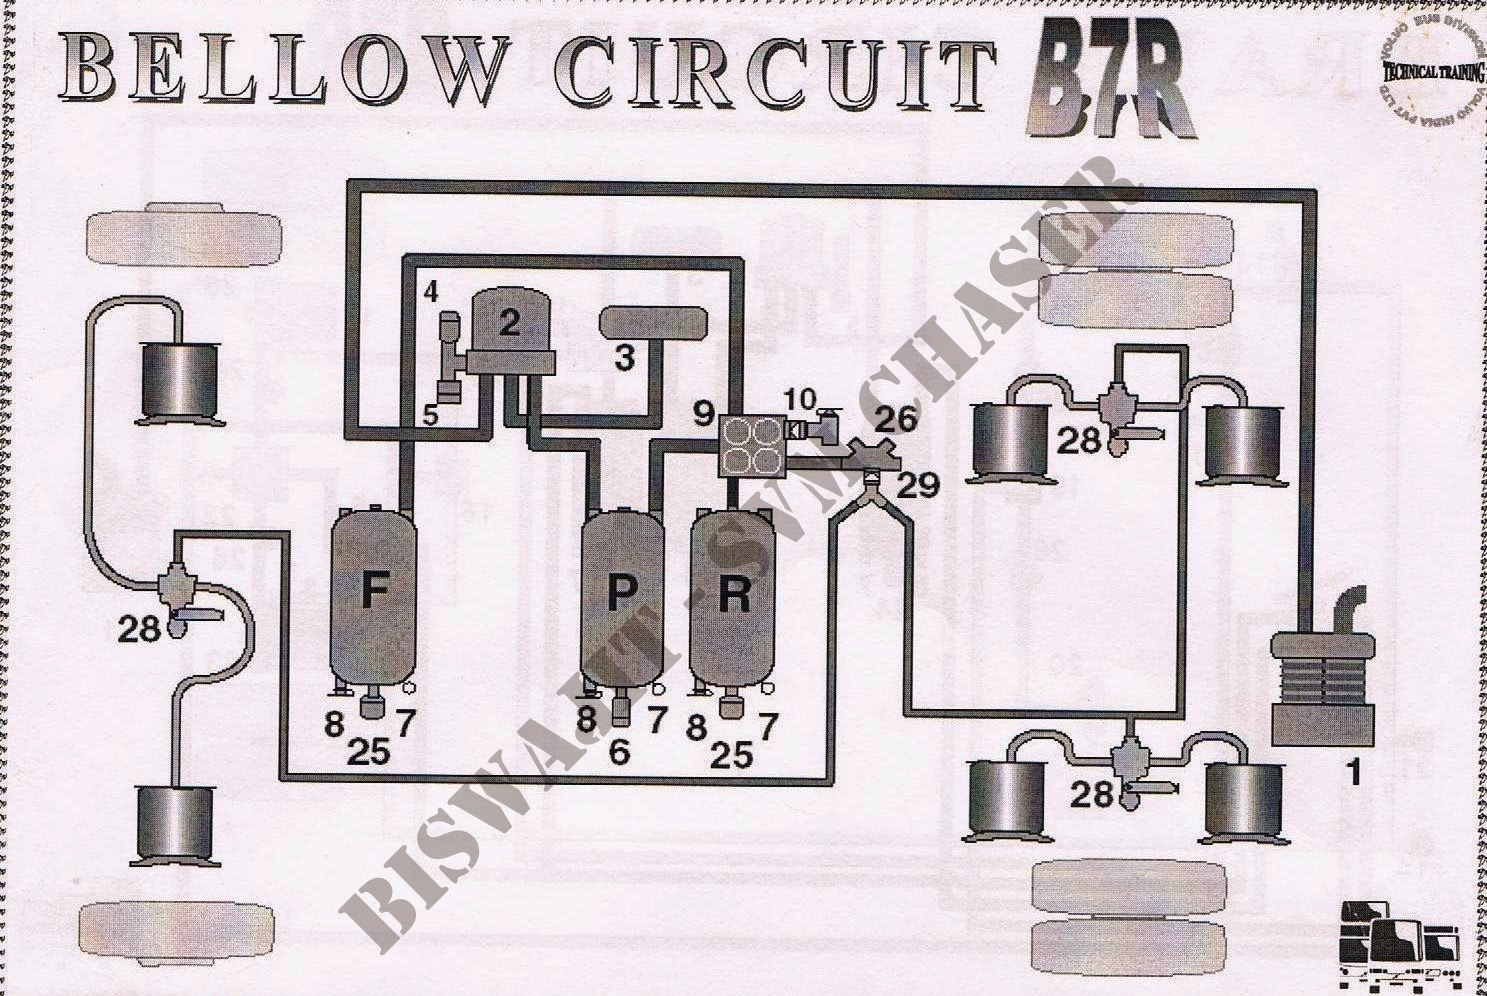 hight resolution of volvo fh12 version 2 wiring diagram wiring libraryvolvo b7r bellow circuit diagram